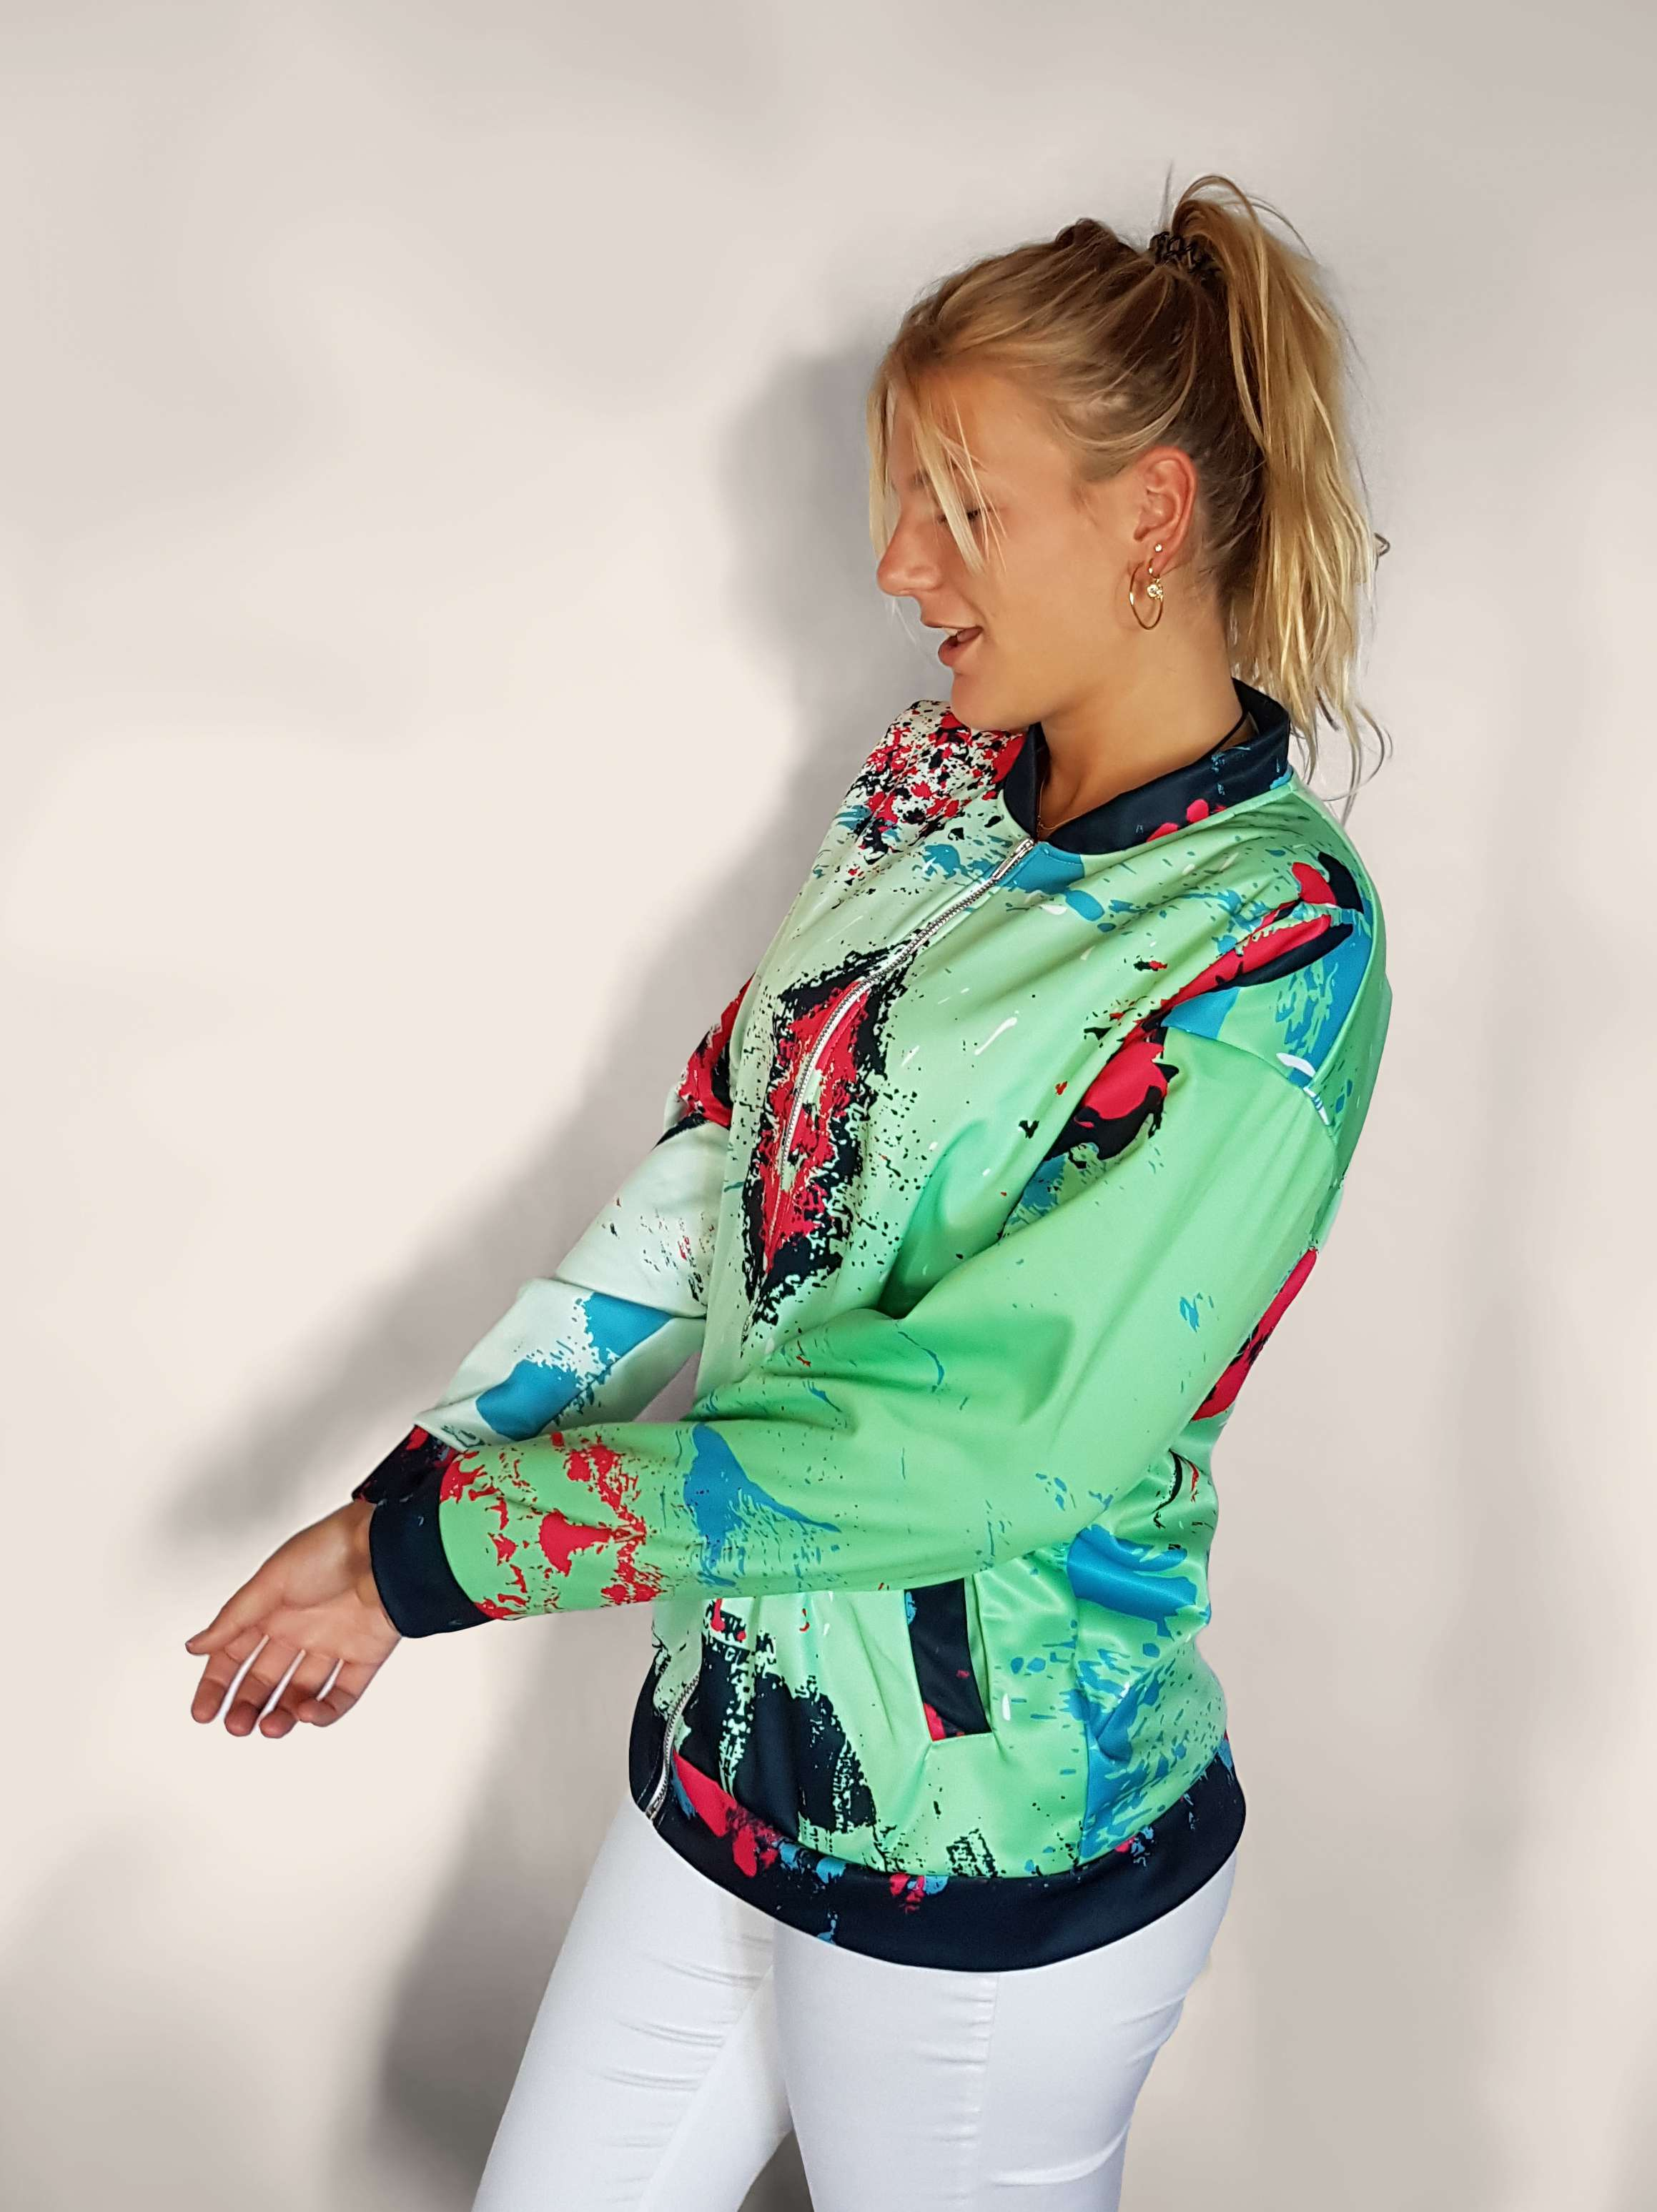 lime green modern art mens and womens jacket sizes go from XS to XXXL